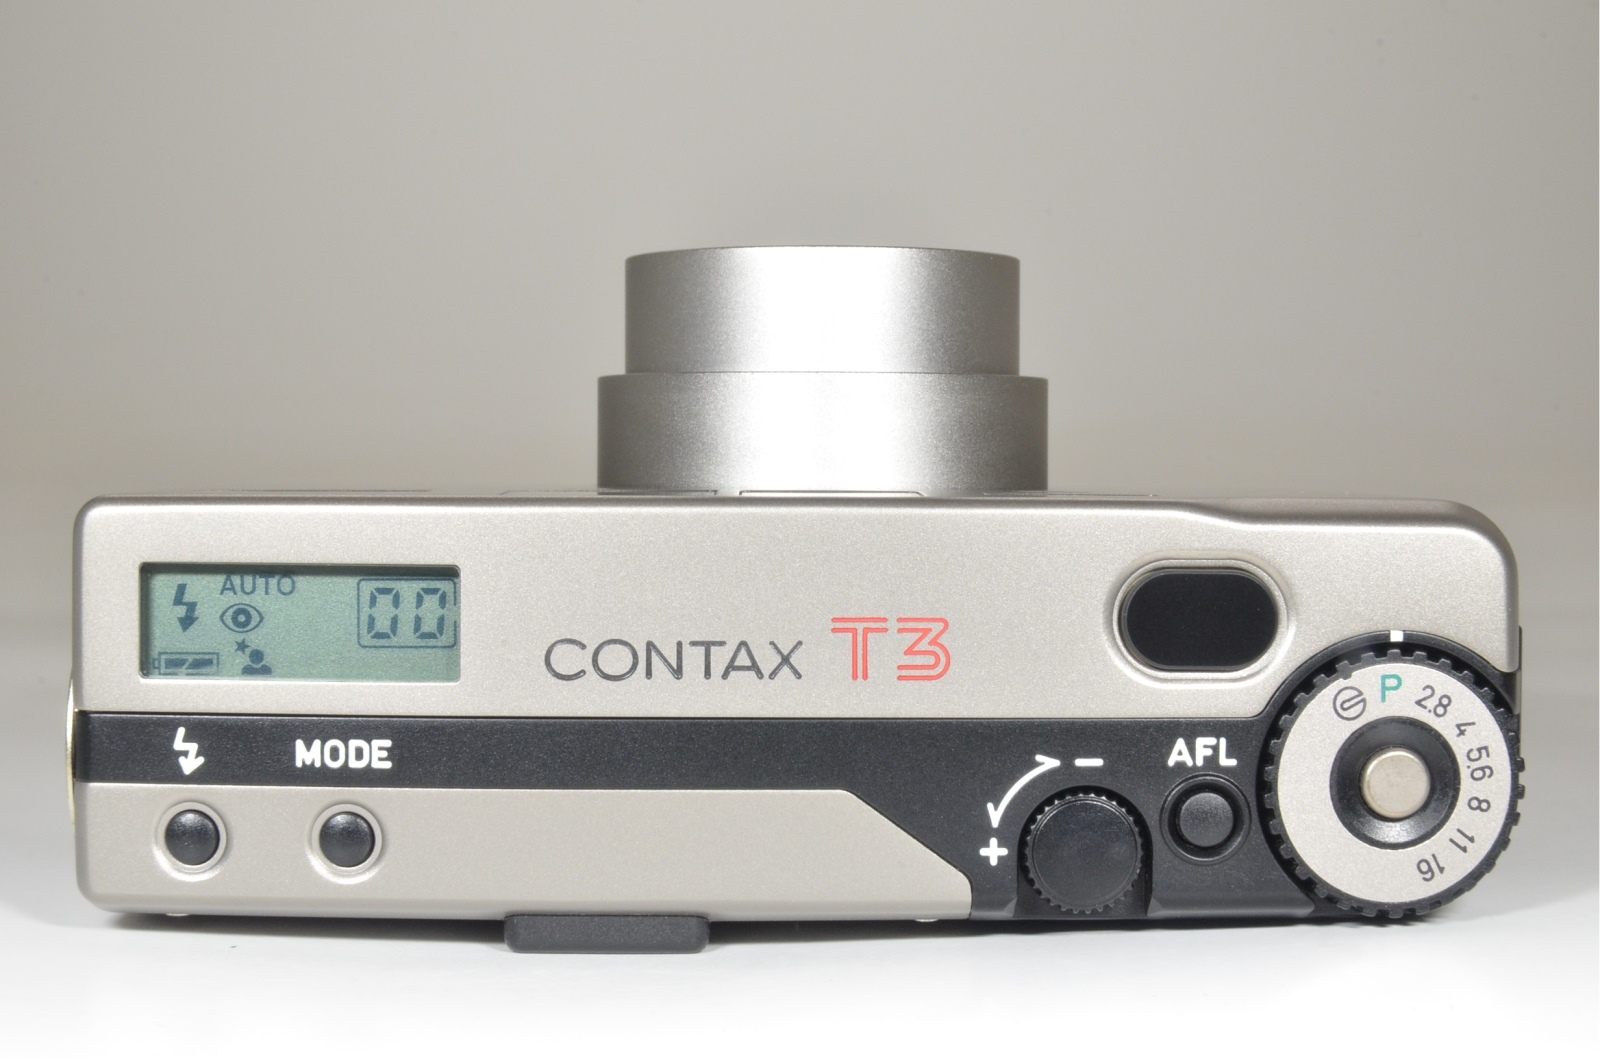 contax t3 double teeth with hirai leather case p&s 35mm film camera